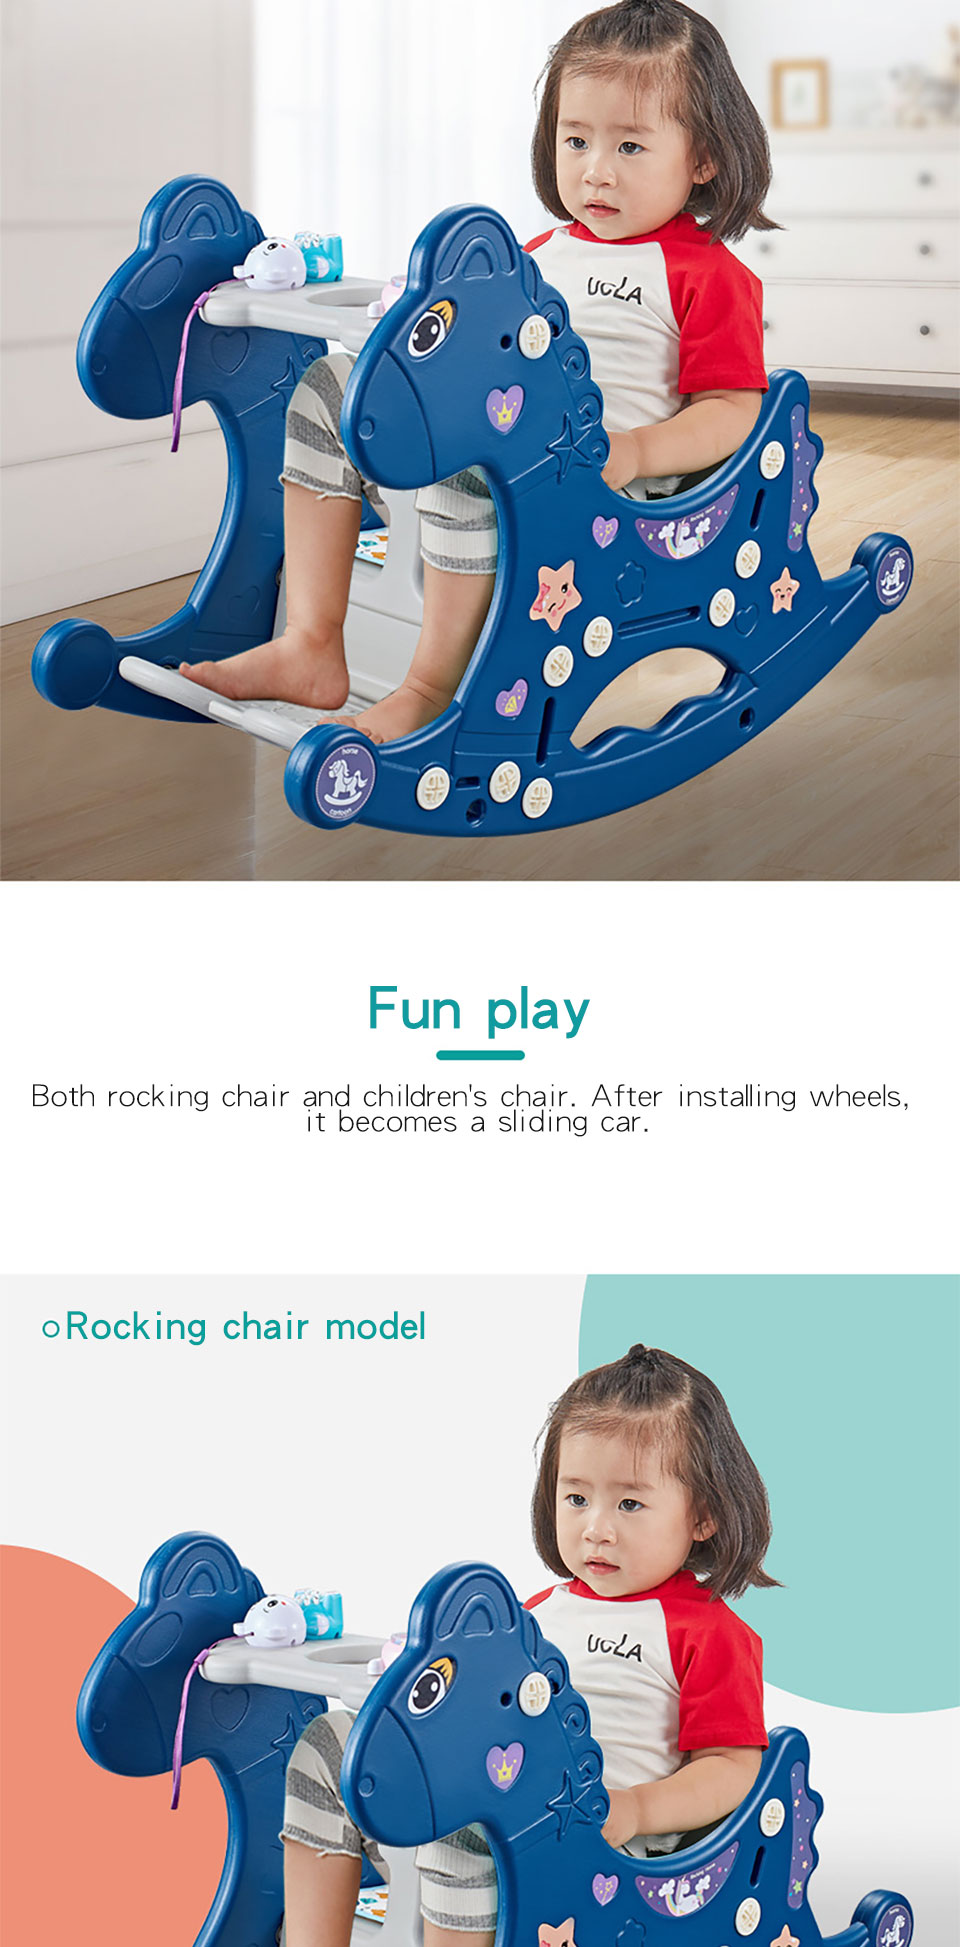 H0fce2d92714a4718a71251d615b5021fp Ruizhi Children Three-In-One Plastic Rocking Chair Baby Indoor Multi-Function Rocking Horse With Music Kids Sport Toys RZ1197